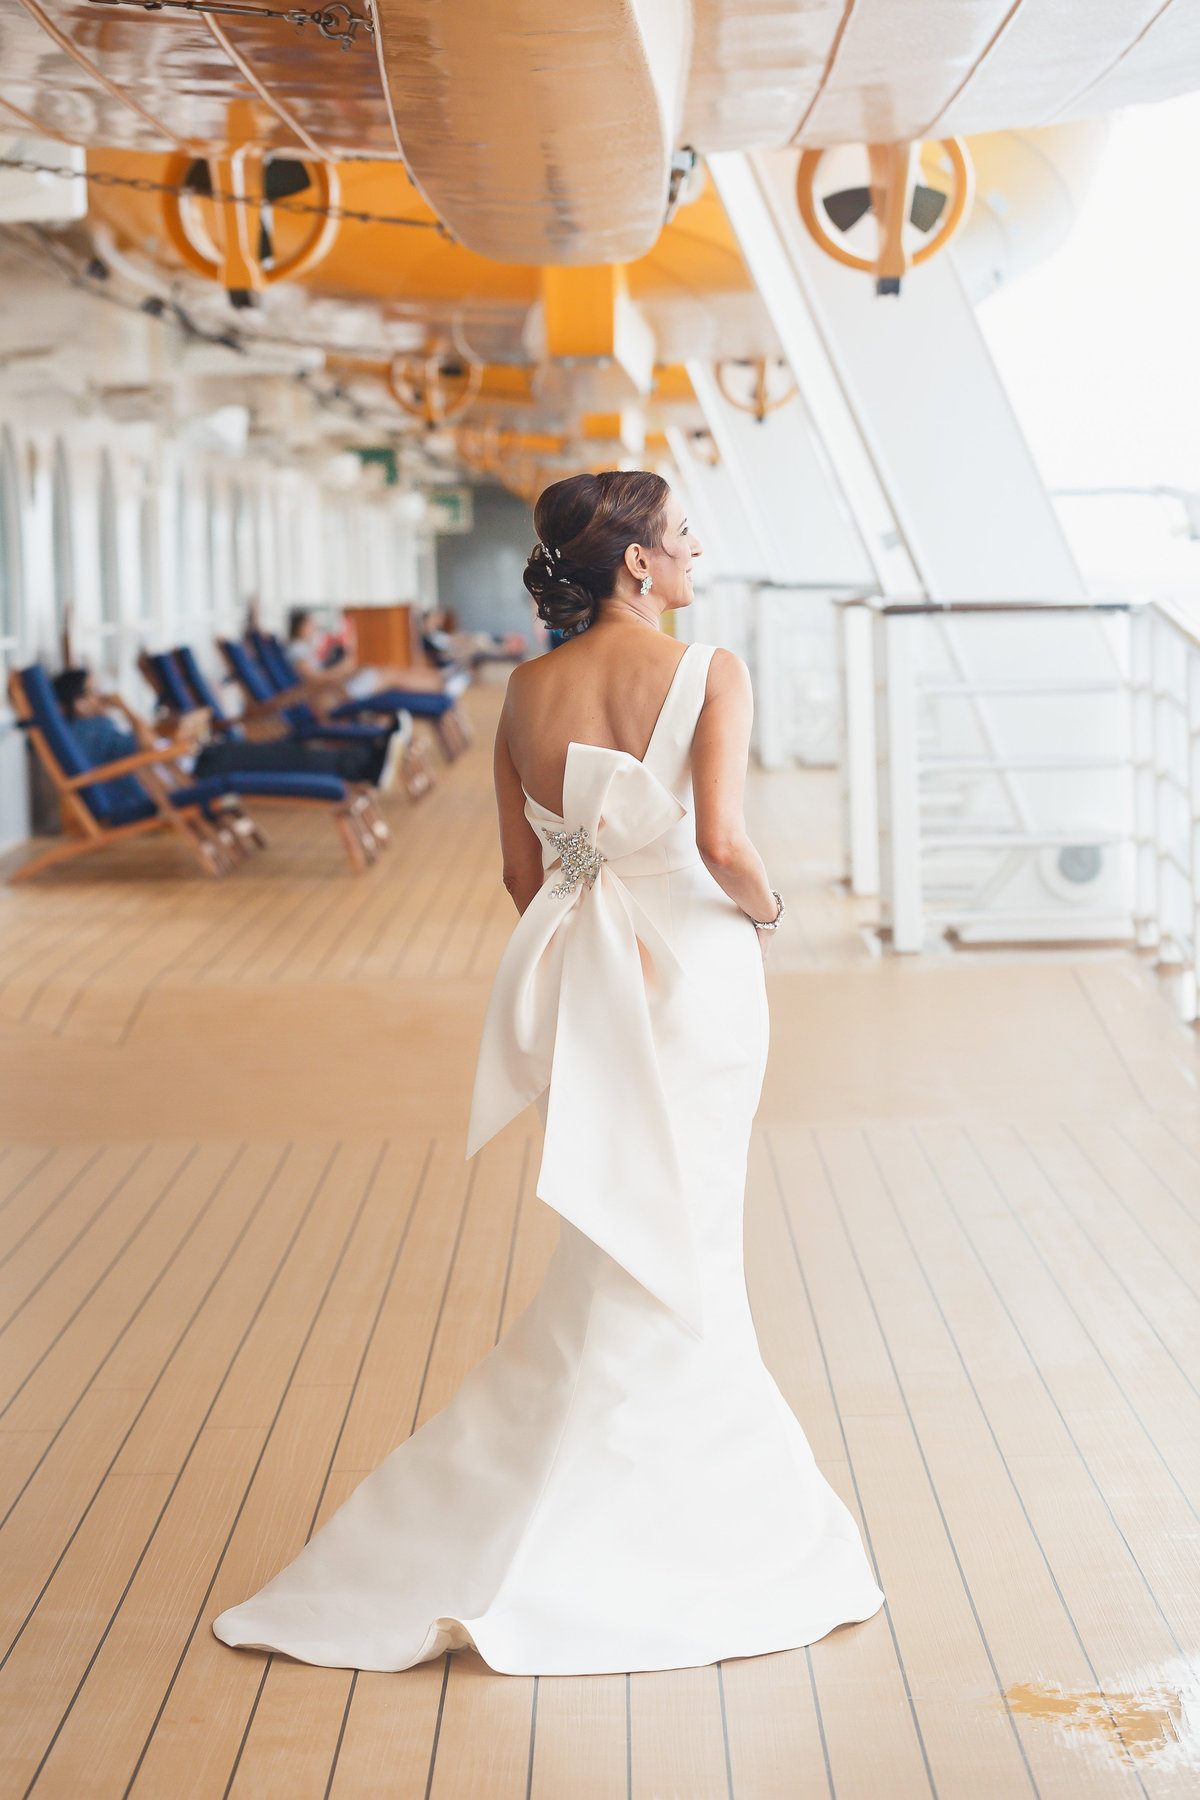 Disney-Cruise-Line-Wedding-Disney-Dream-Jessica-Lea-IMG-117